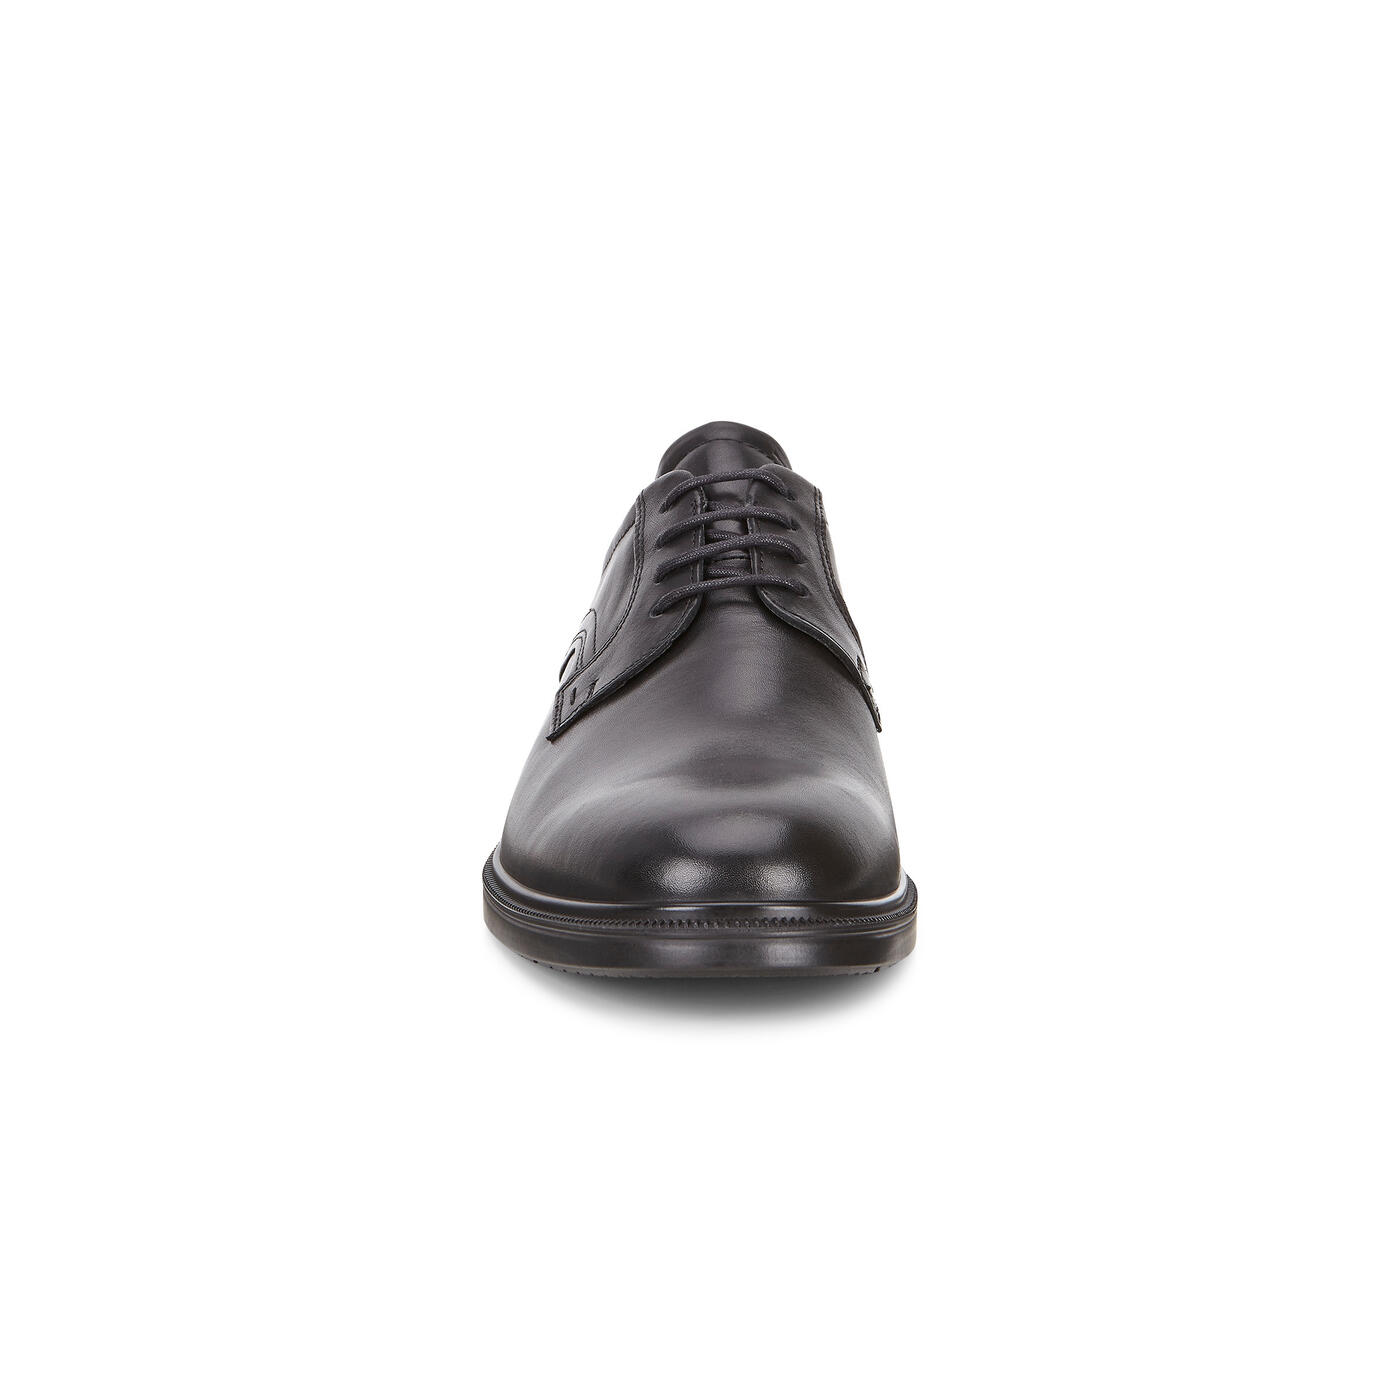 ECCO Lisbon Plain Toe Derby Shoes